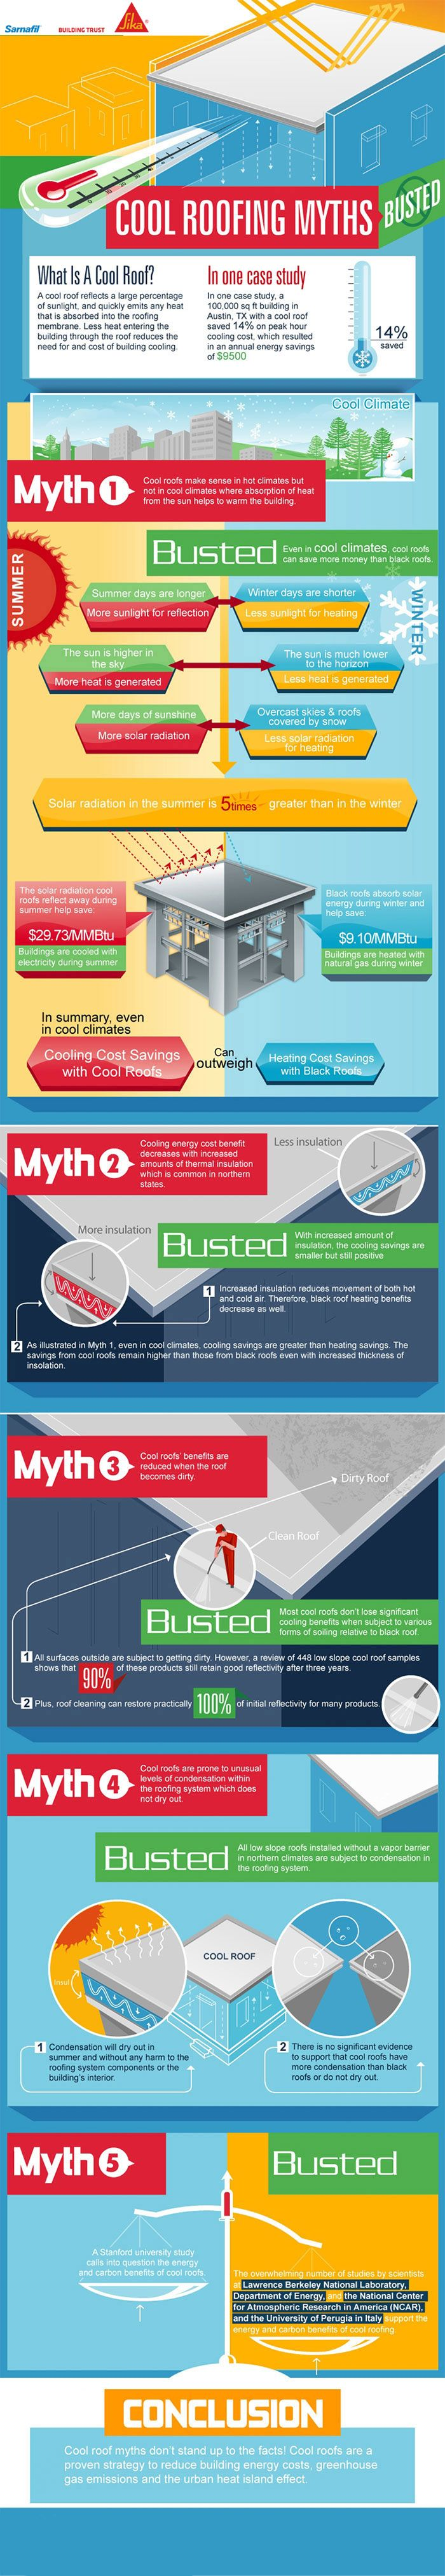 Cool Roofing Myths Busted